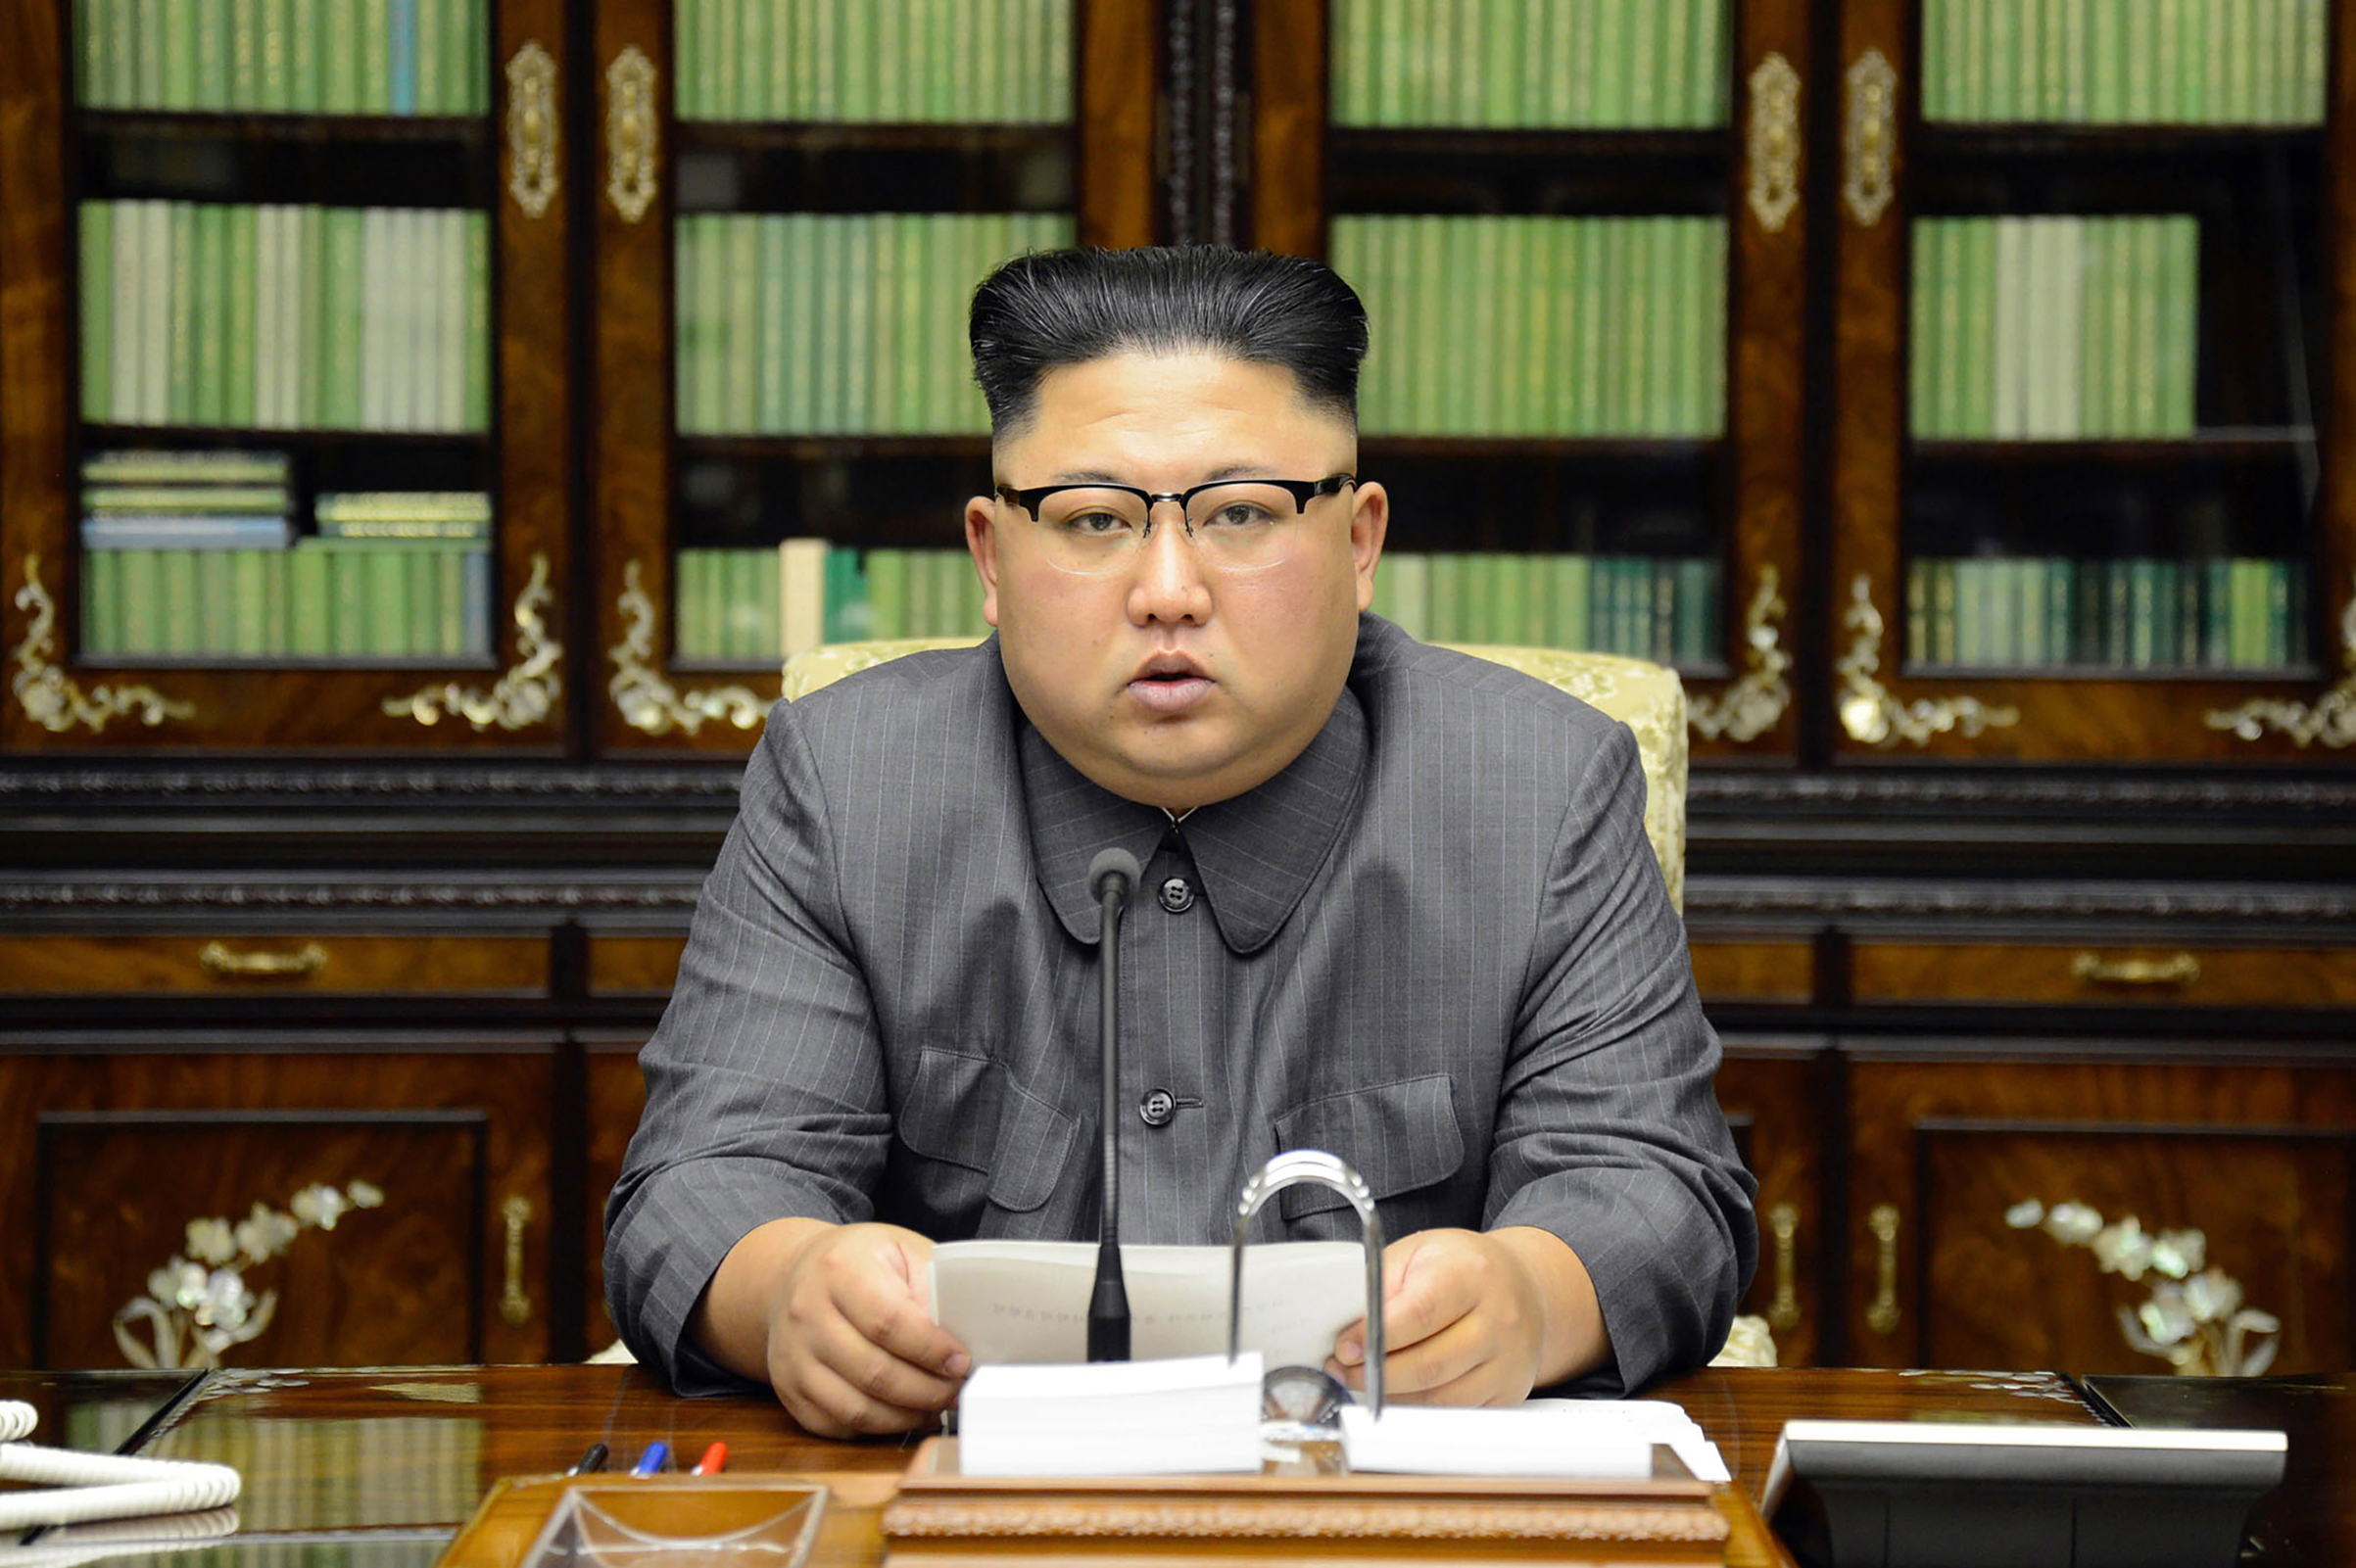 North Korean leader Kim Jong-Un delivering a statement in Pyongyan as regards to a speech made by the president of the United States of America at the UN General Assembly.